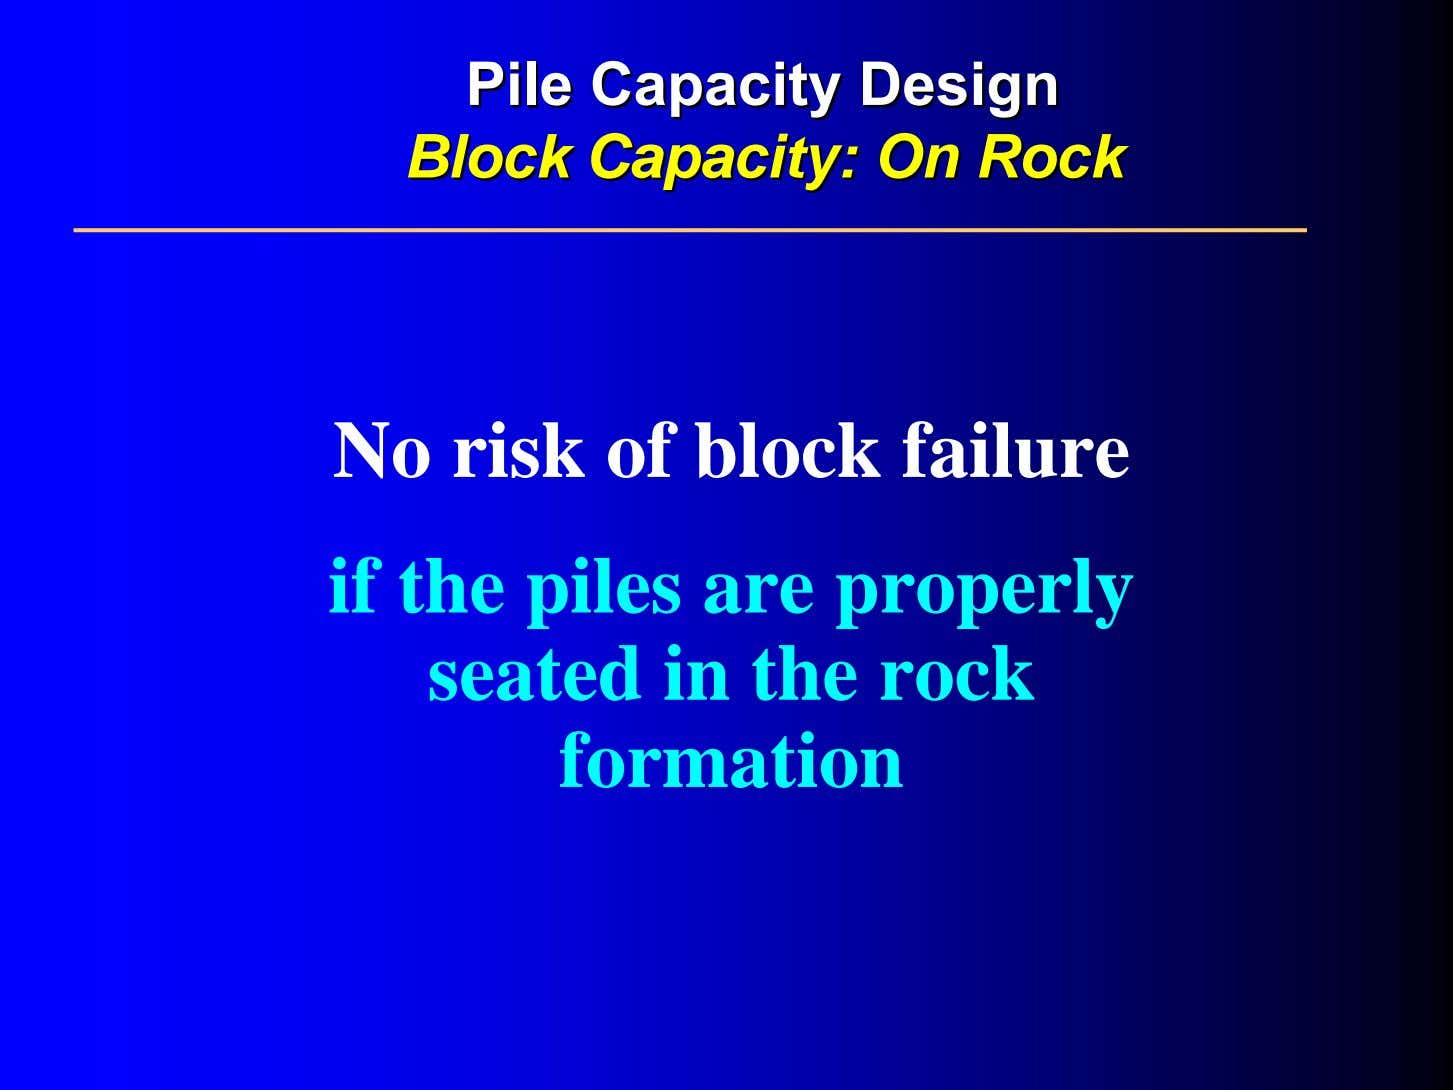 PilePile CapacityCapacity DesignDesign BlockBlock Capacity:Capacity: OnOn RockRock No risk of block failure if the